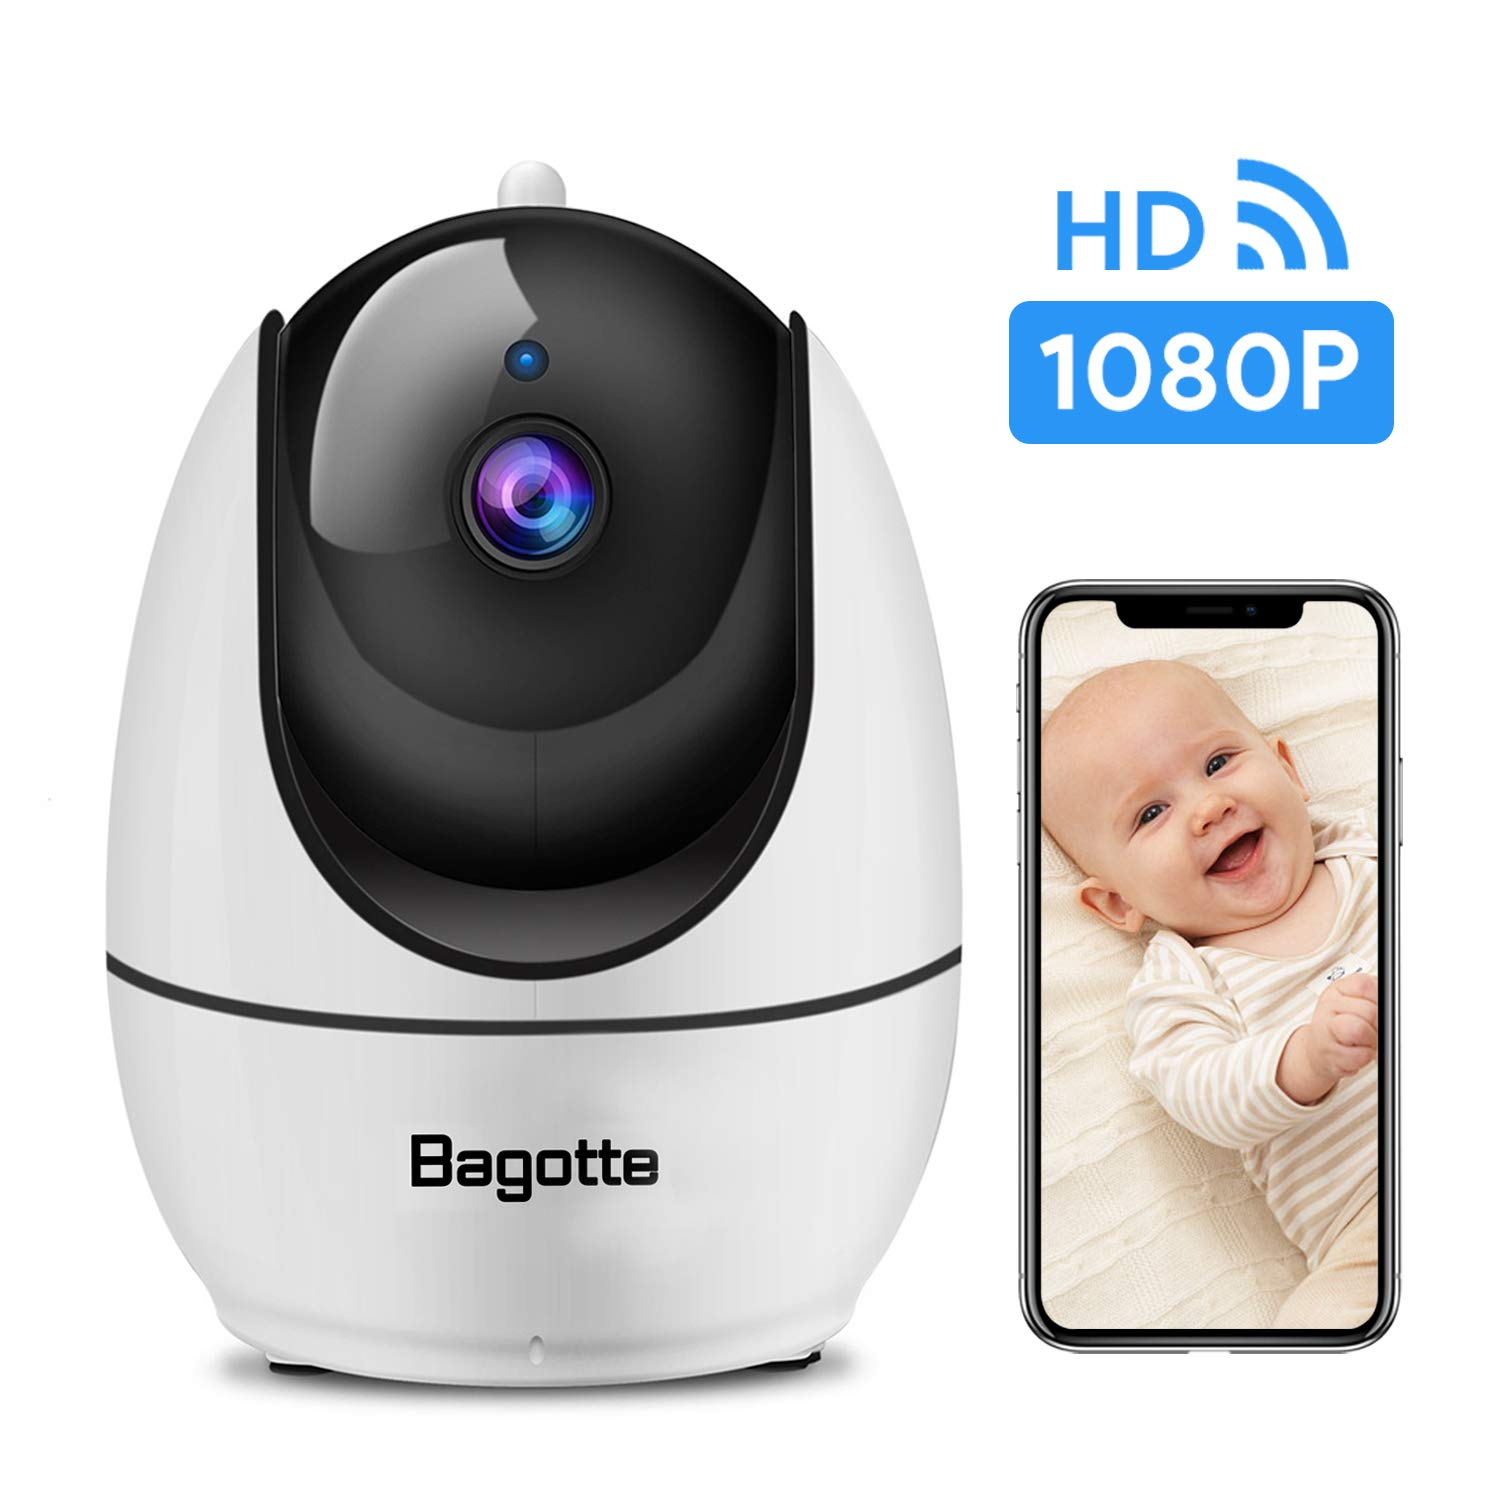 WiFi Camera, Bagotte 1080P FHD Home Security Camera with Super IR Night Vision, 2-Way Audio, Motion Detection, Pan/Tilt/Zoom Pet Camera for Baby/Elder/Nanny by Bagotte